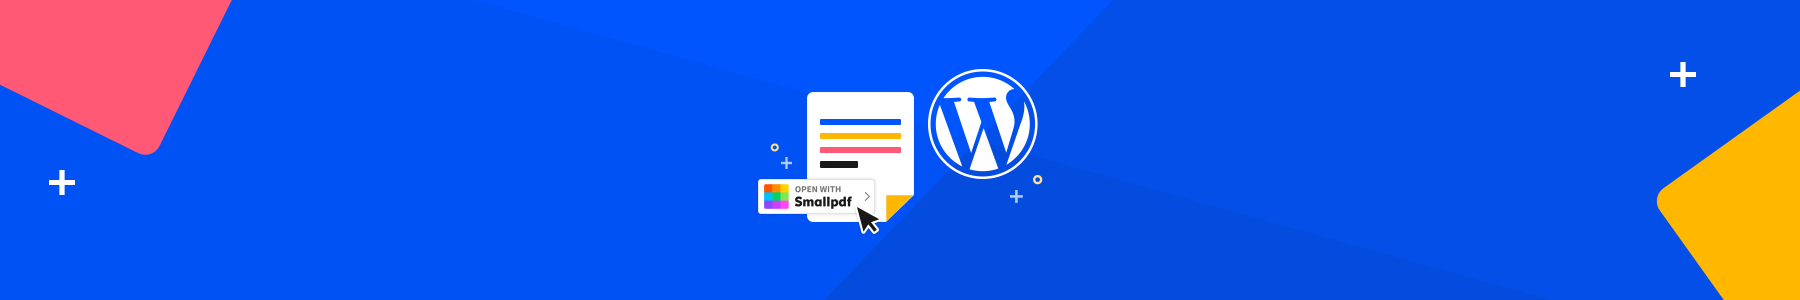 incorporare-pdf-wordpress@2x